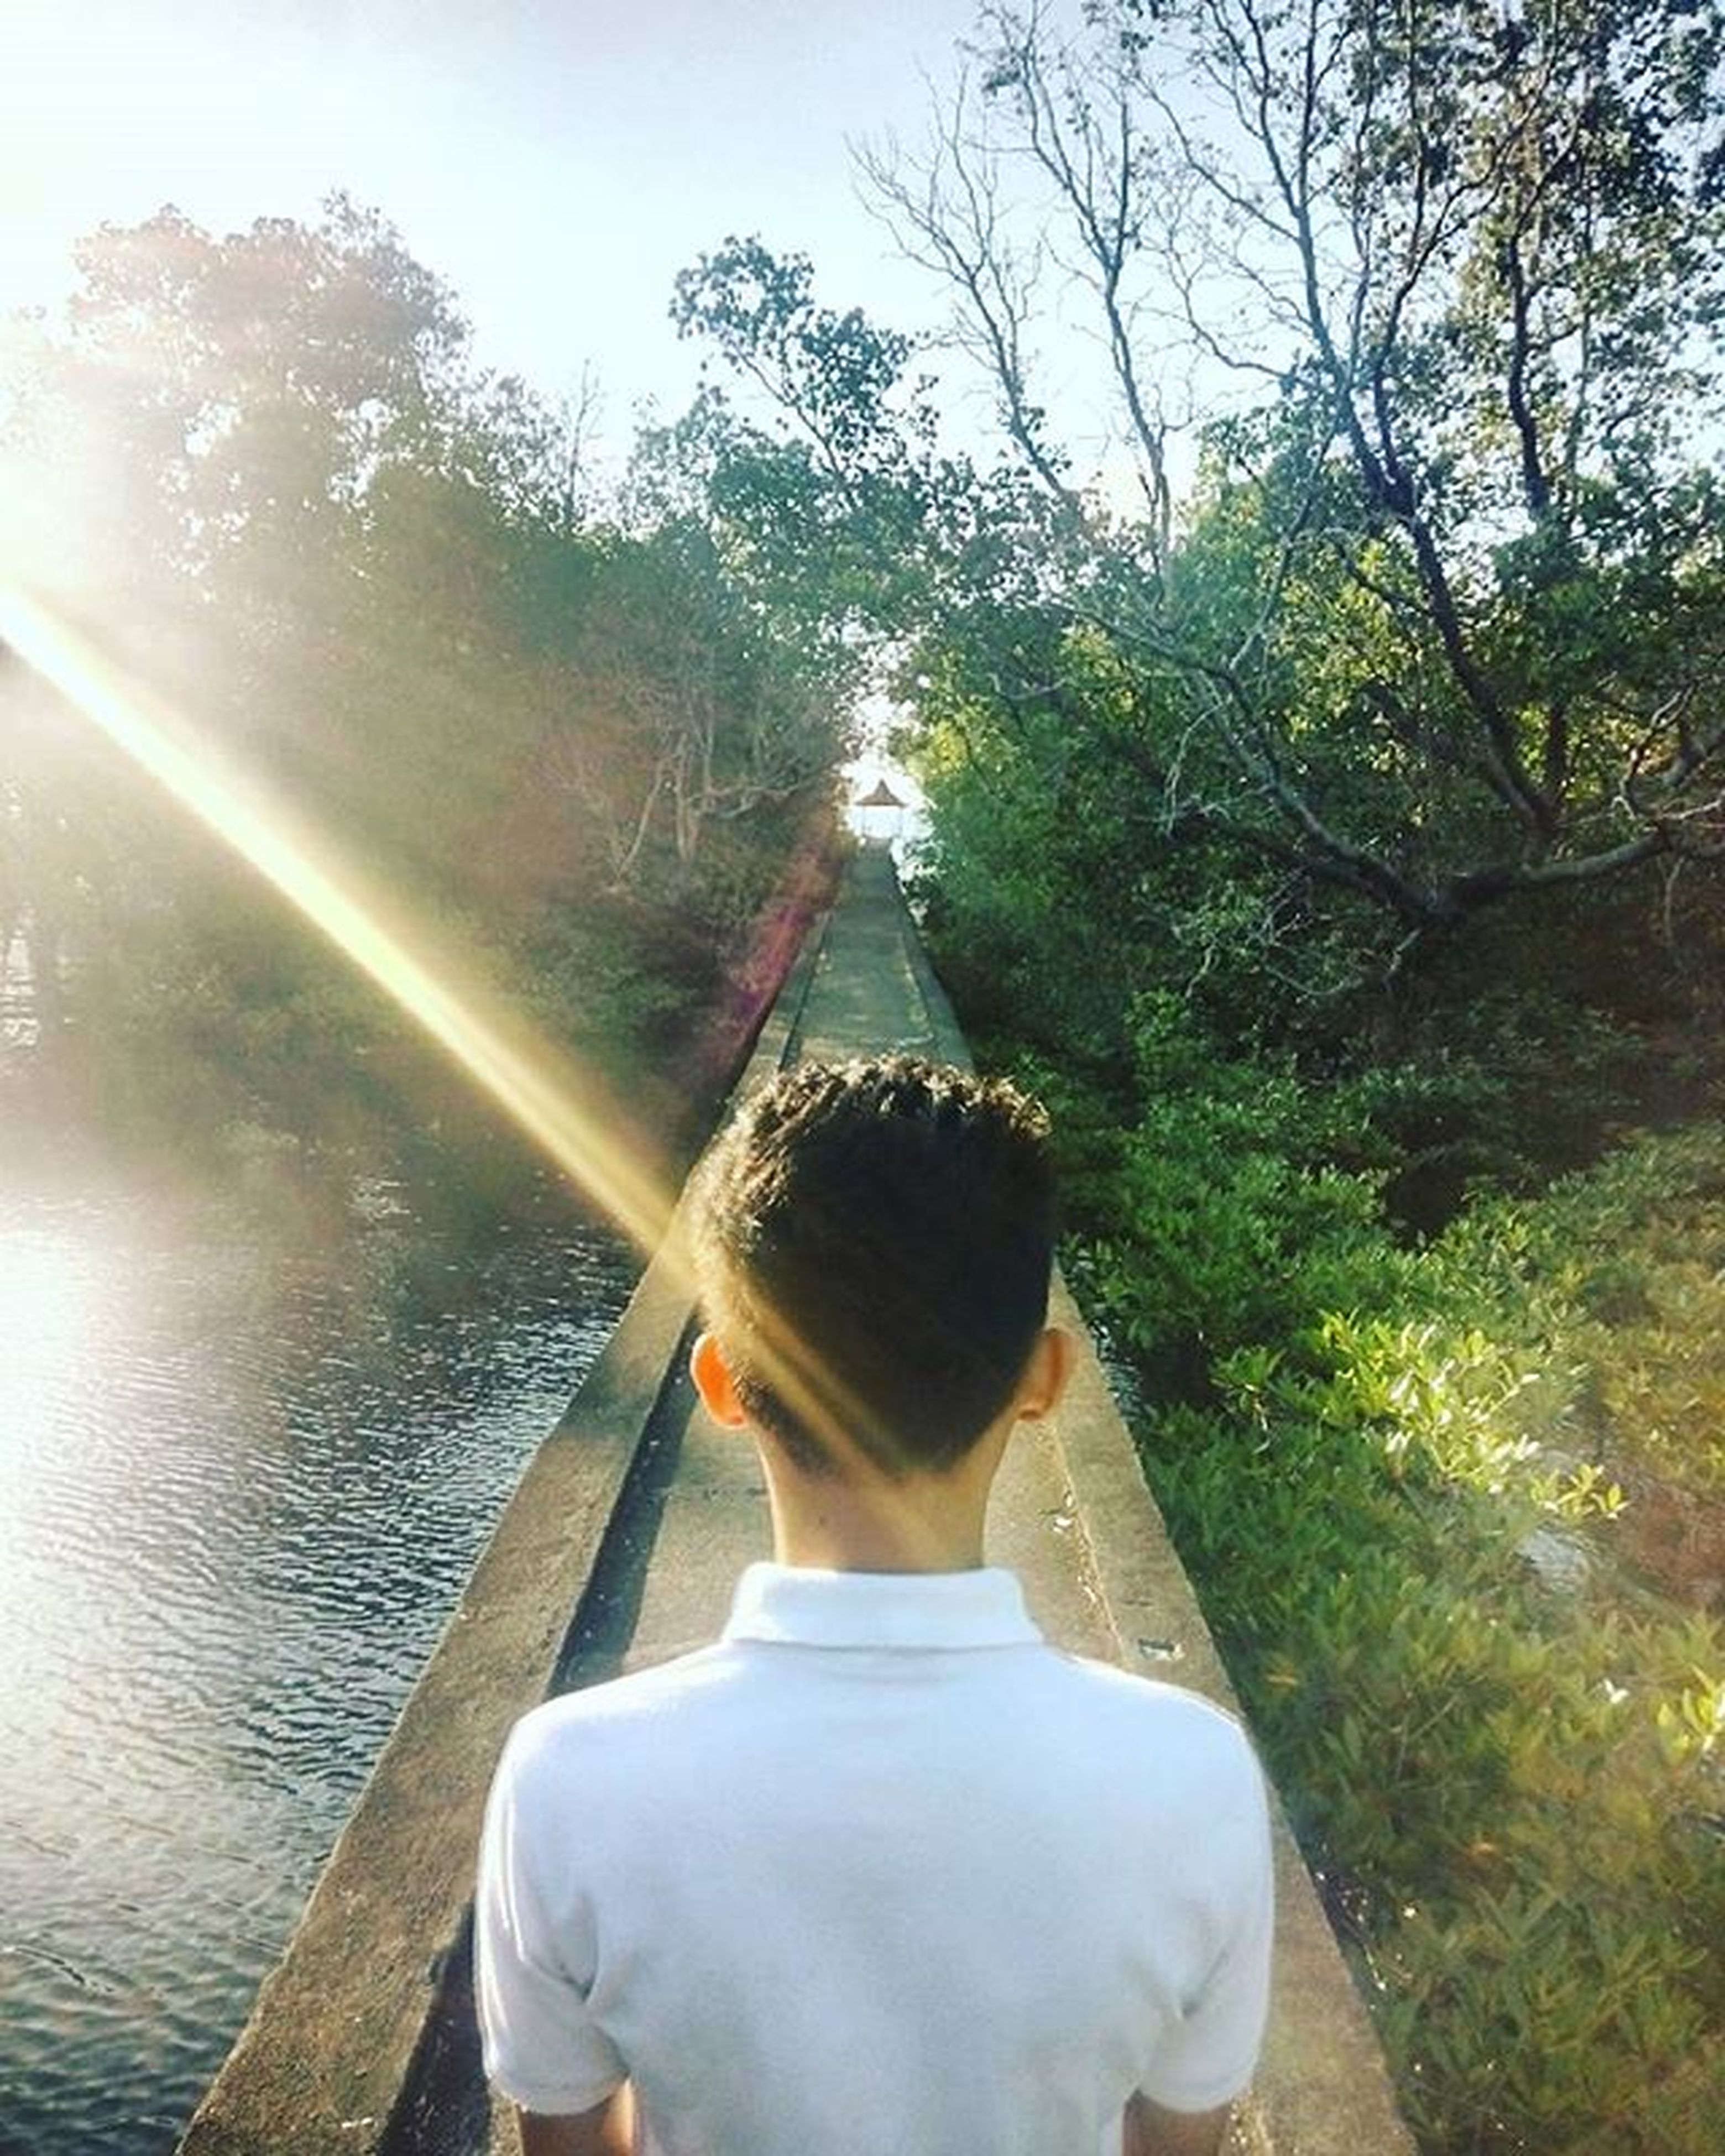 tree, lifestyles, leisure activity, water, casual clothing, sunlight, full length, sunbeam, young adult, rear view, nature, person, standing, sun, growth, lens flare, day, river